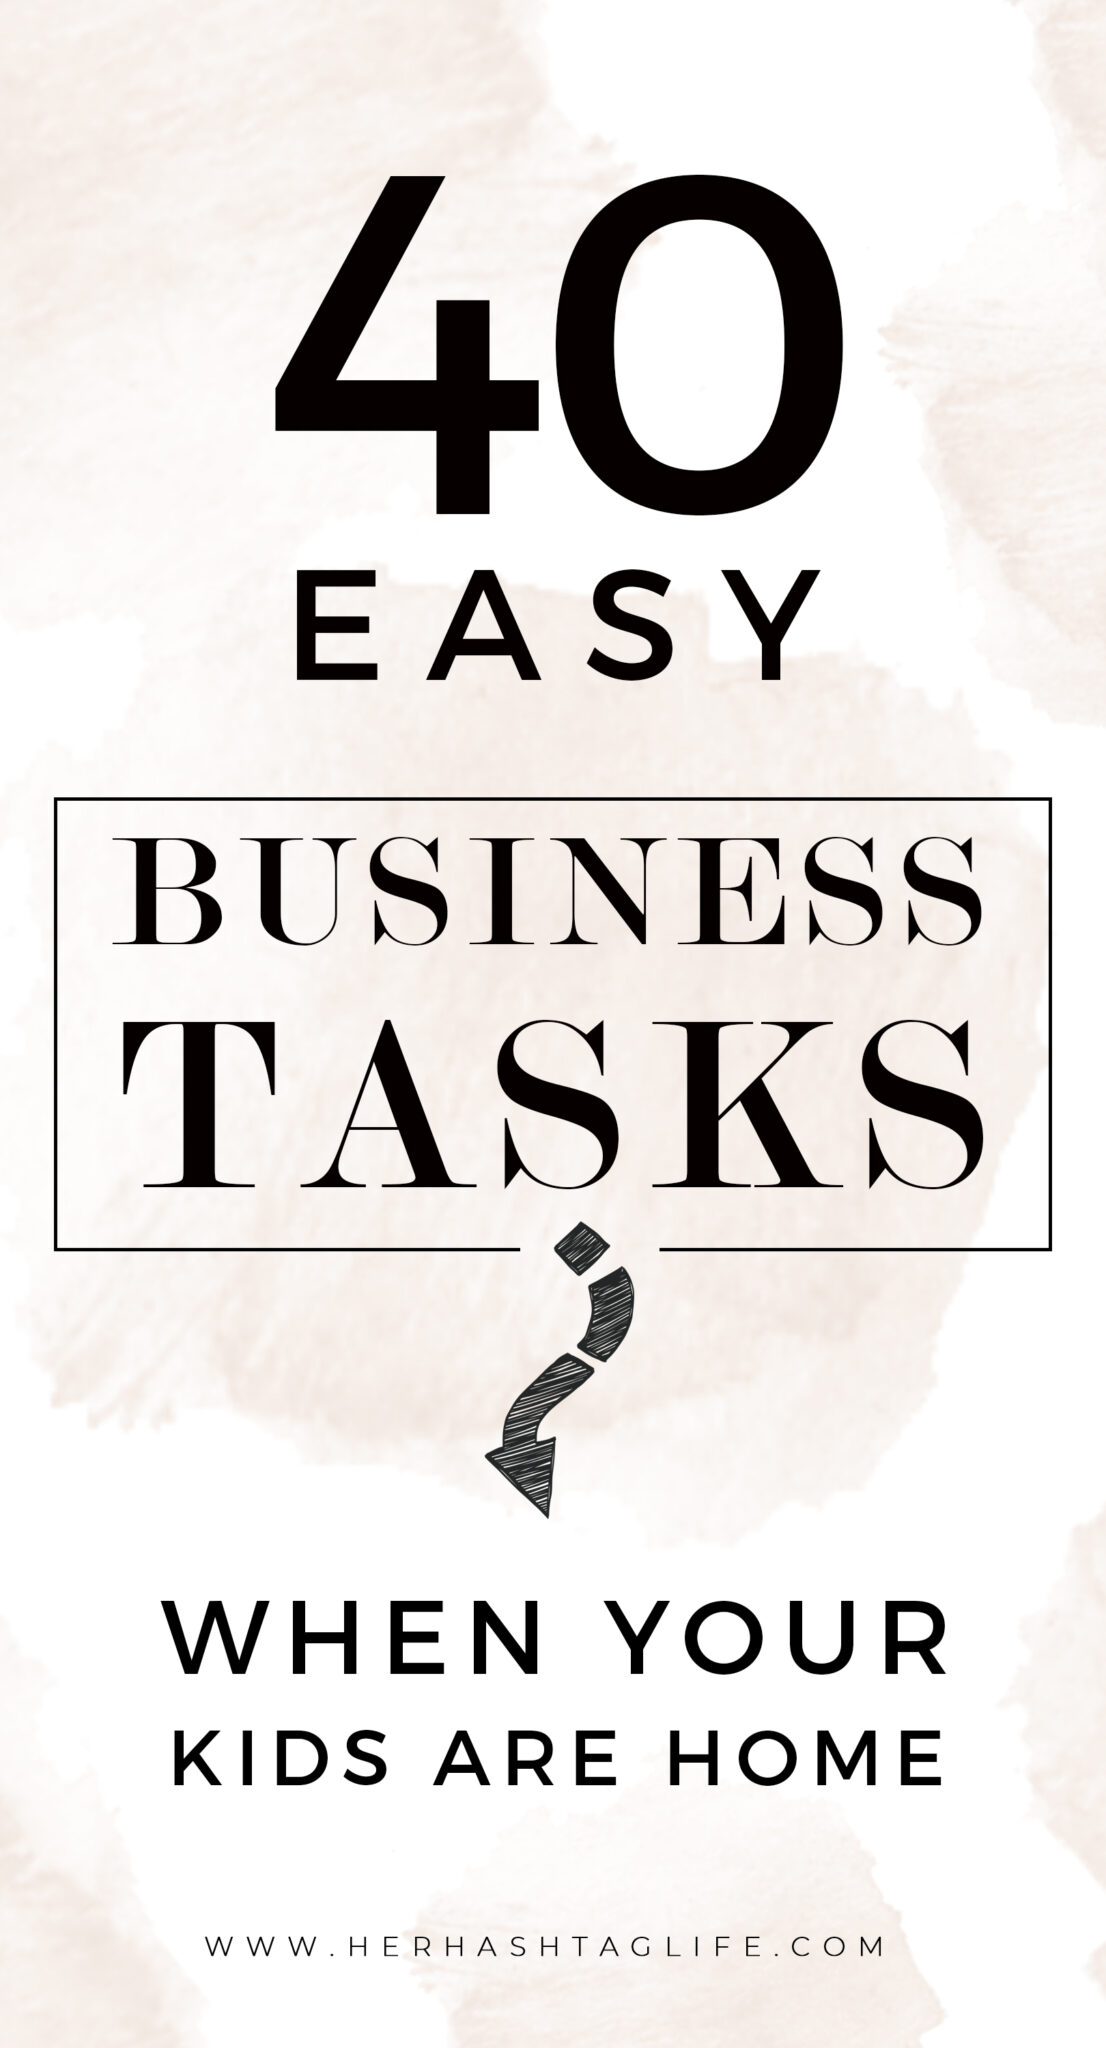 Business Tasks to do when your kids are home